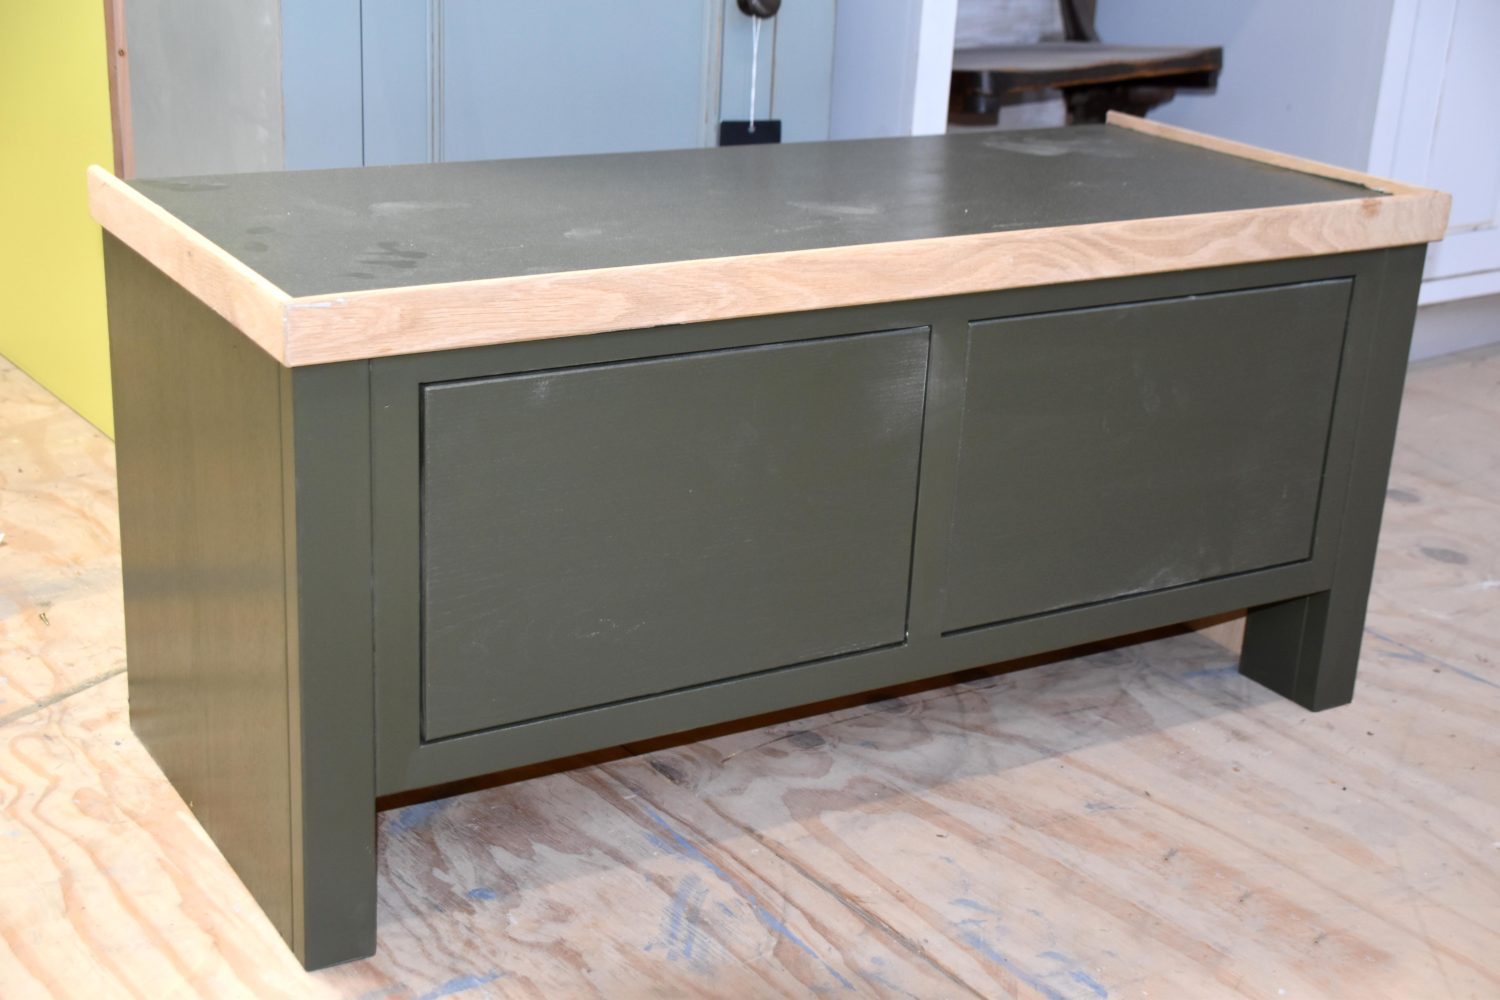 This window seat is hand painted in Little Greene Invisible Green and comes with two drawers with handles of your choice. Hand crafted by Mudd & Co.